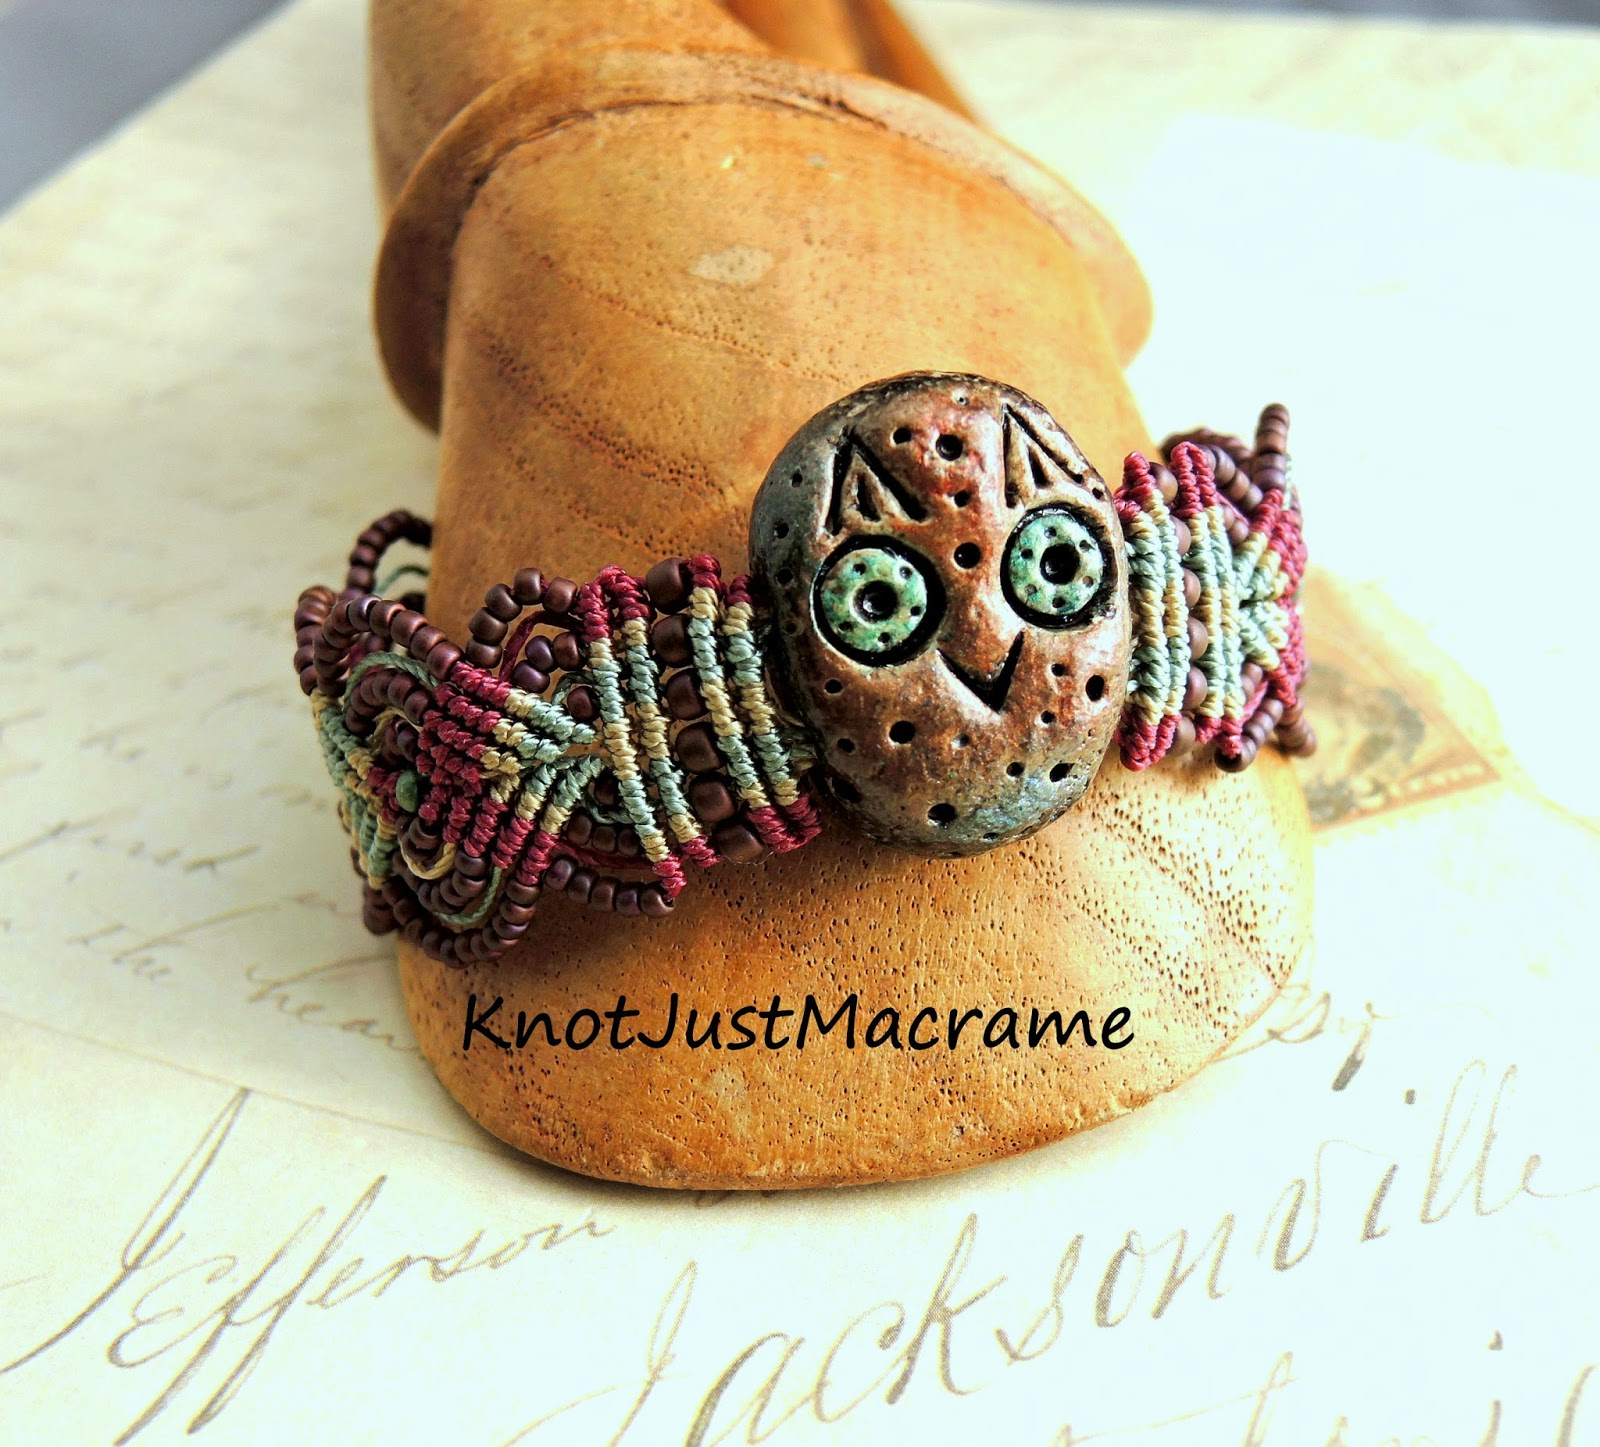 Macrame bracelet by Sherri Stokey with owl from Dreams & Elements.